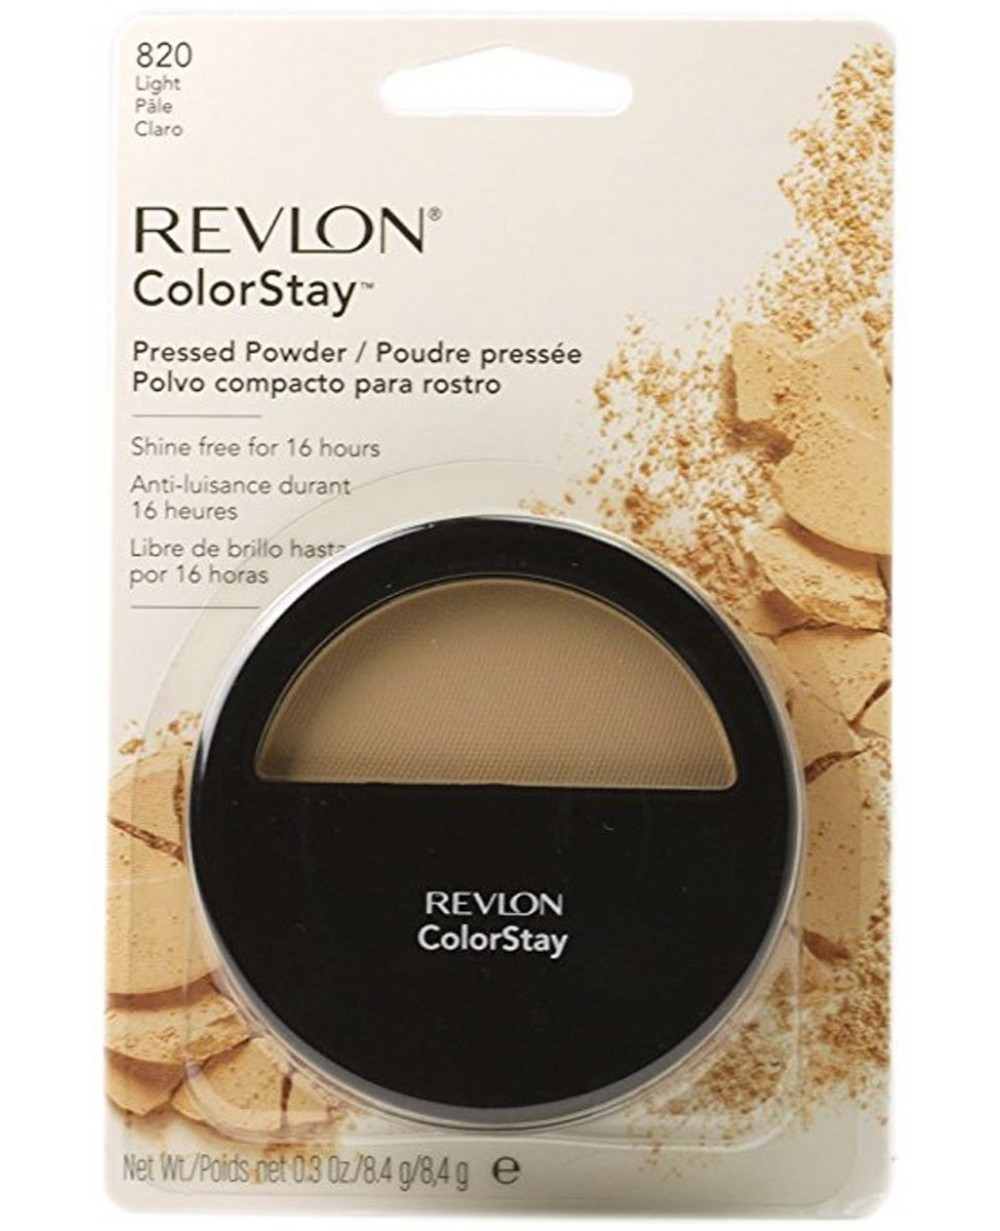 Revlon Color Stay #820 Pressed Powder Light